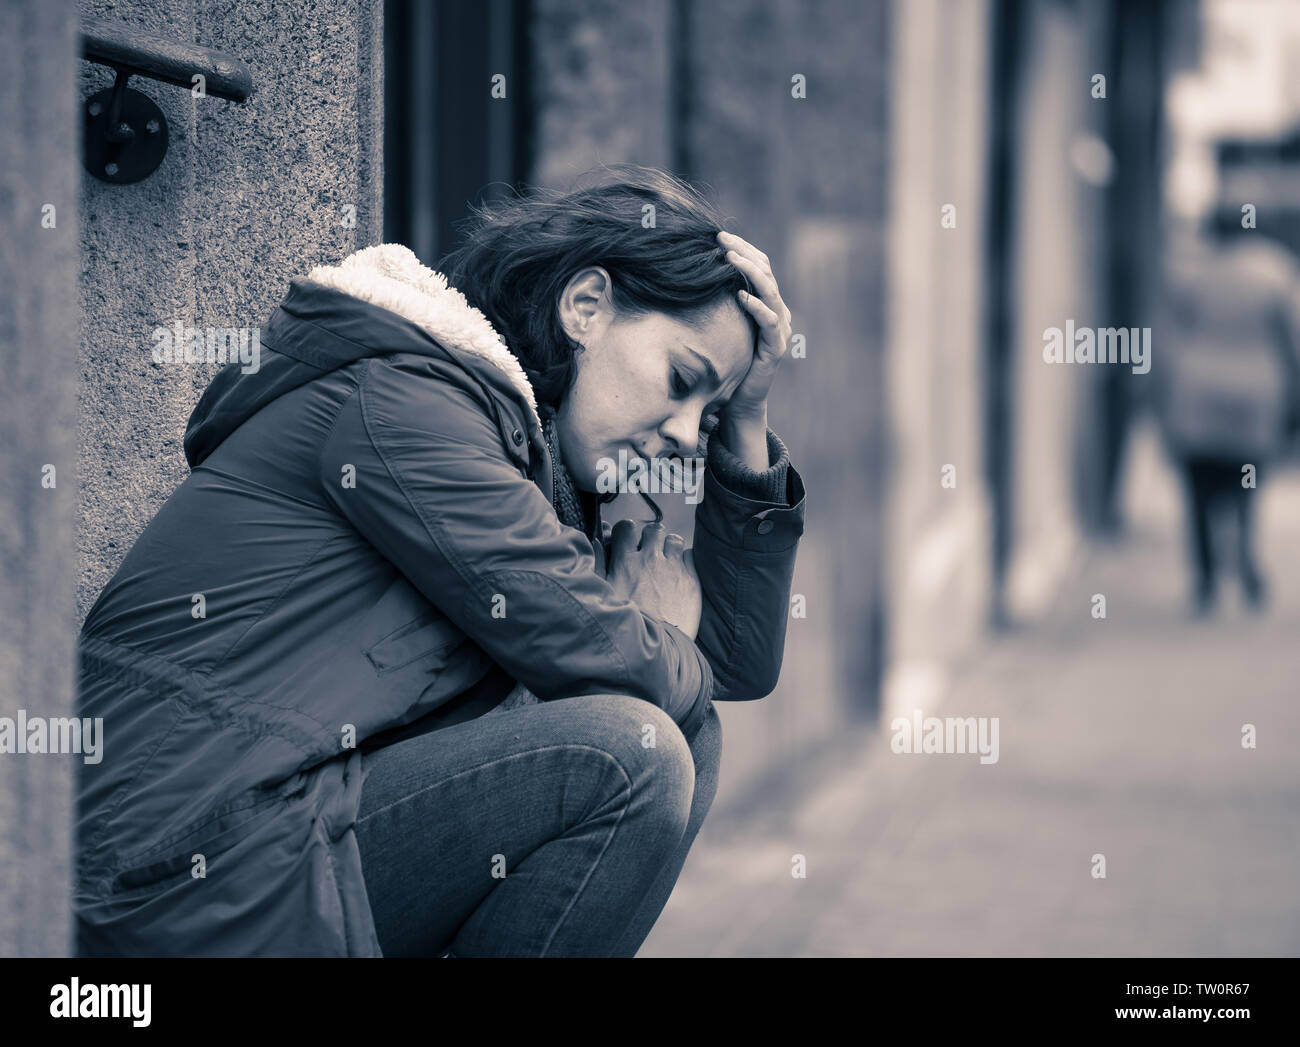 Attractive woman suffering from depression felling sad unhappy heartbroken and lonely sitting in city urban street in Mental health Emotional pain Abu - Stock Image